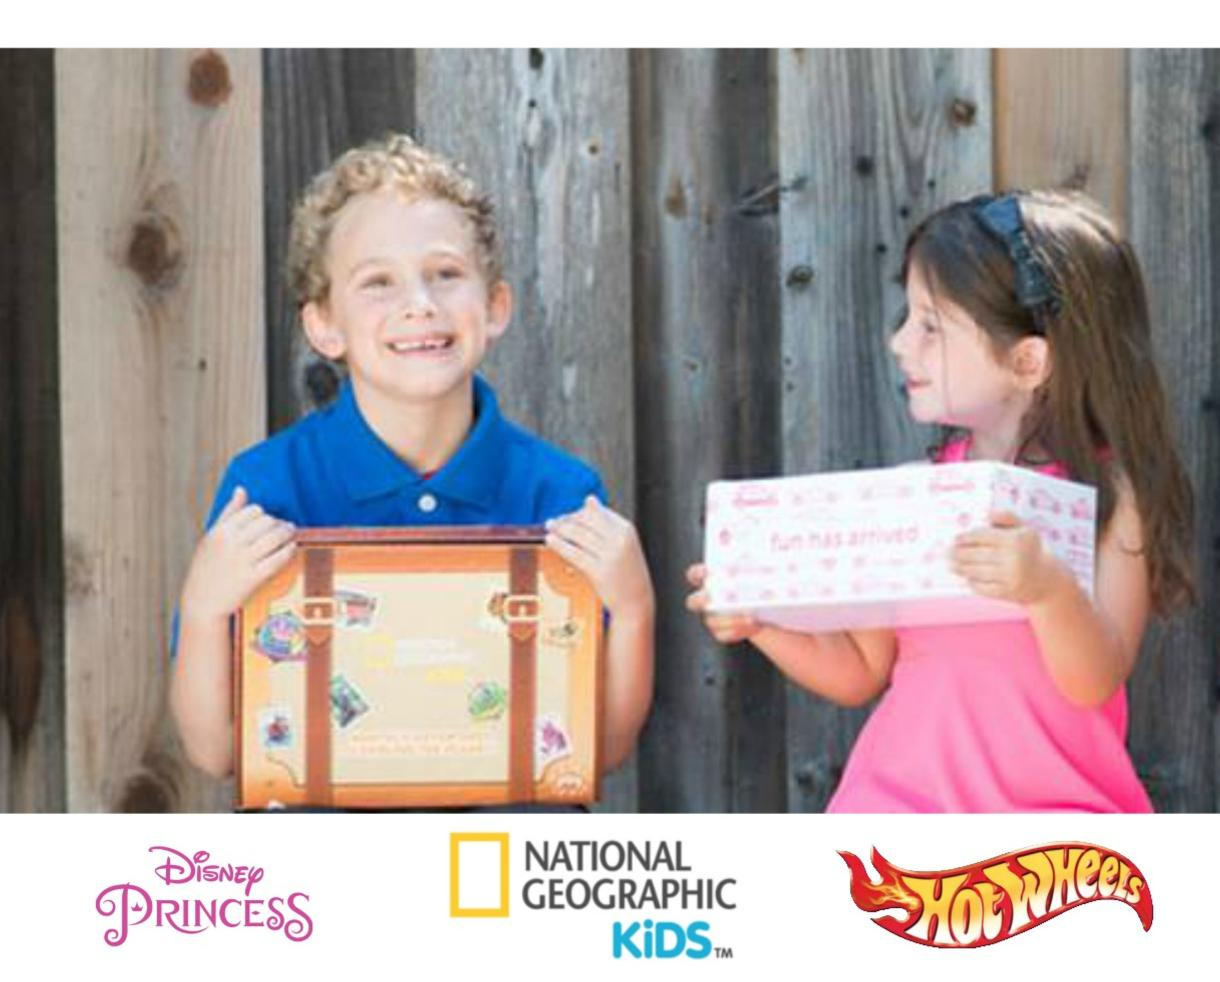 $10 for Disney Princess, Hot Wheels or National Geographic Pleybox! (Up to 67% Off)